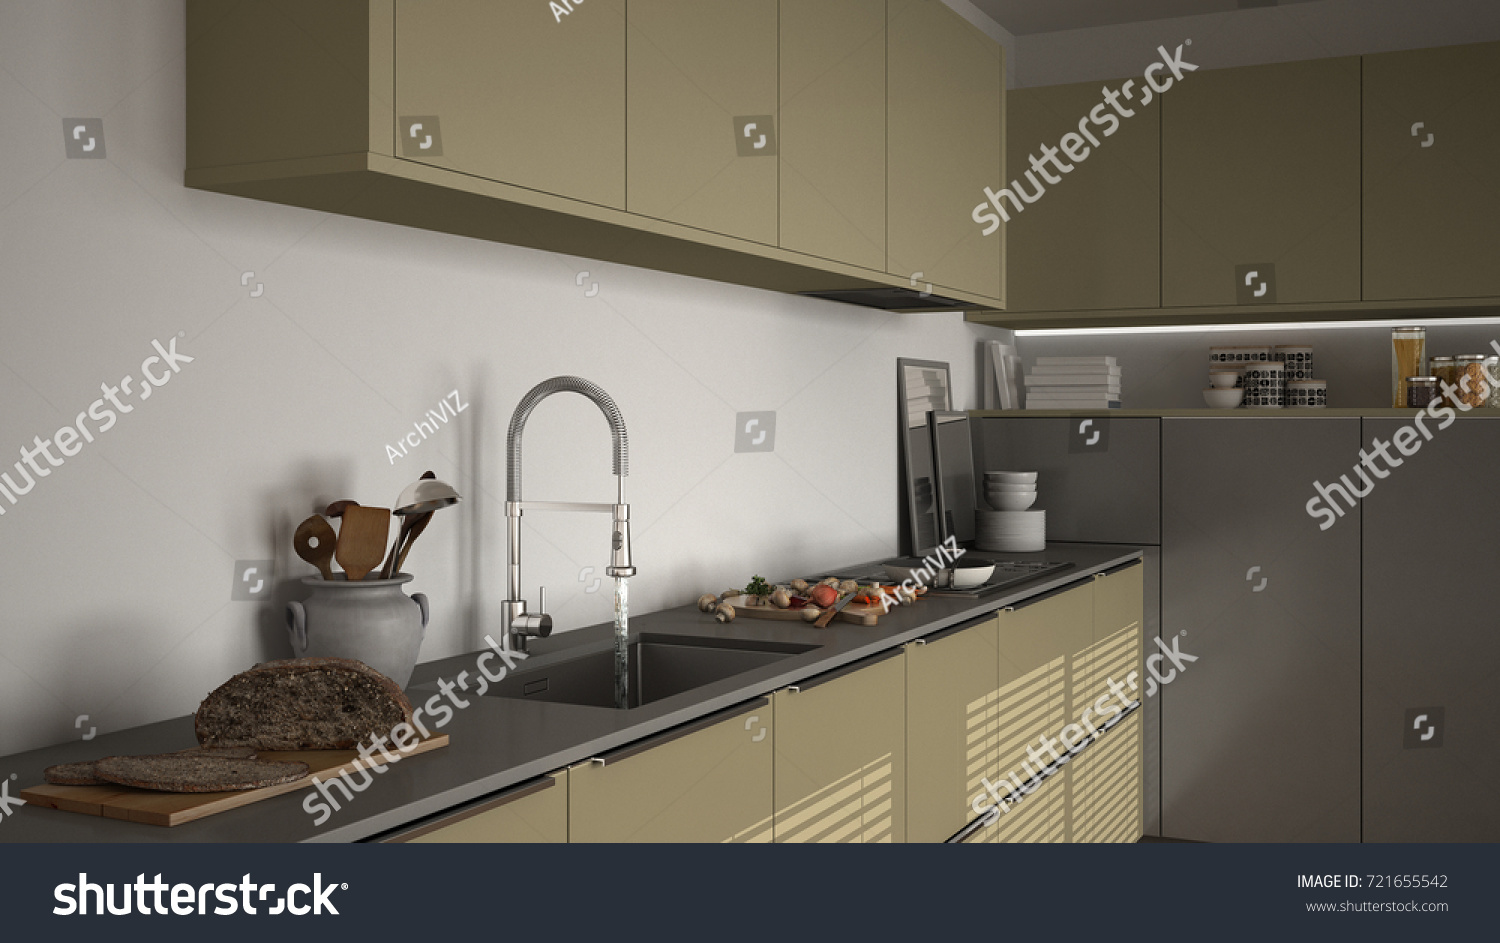 Modern kitchen with sink and stove cooking pan and food close up